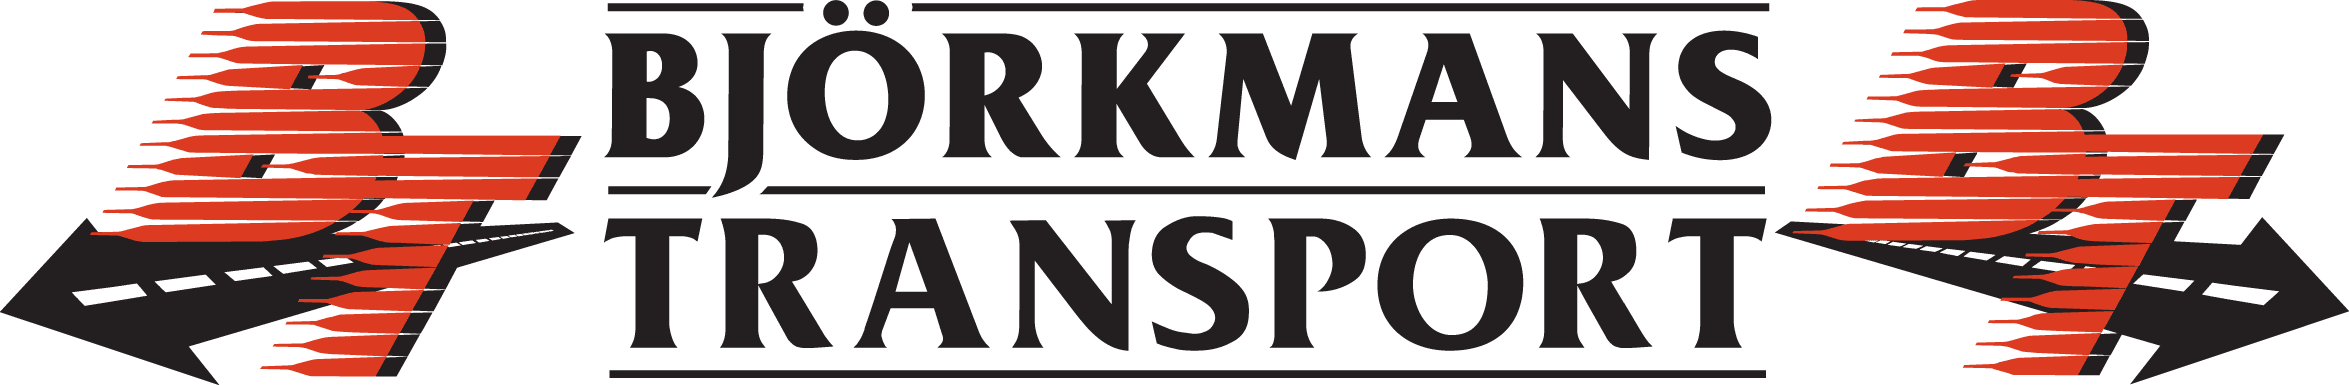 Image result for björkmans transport